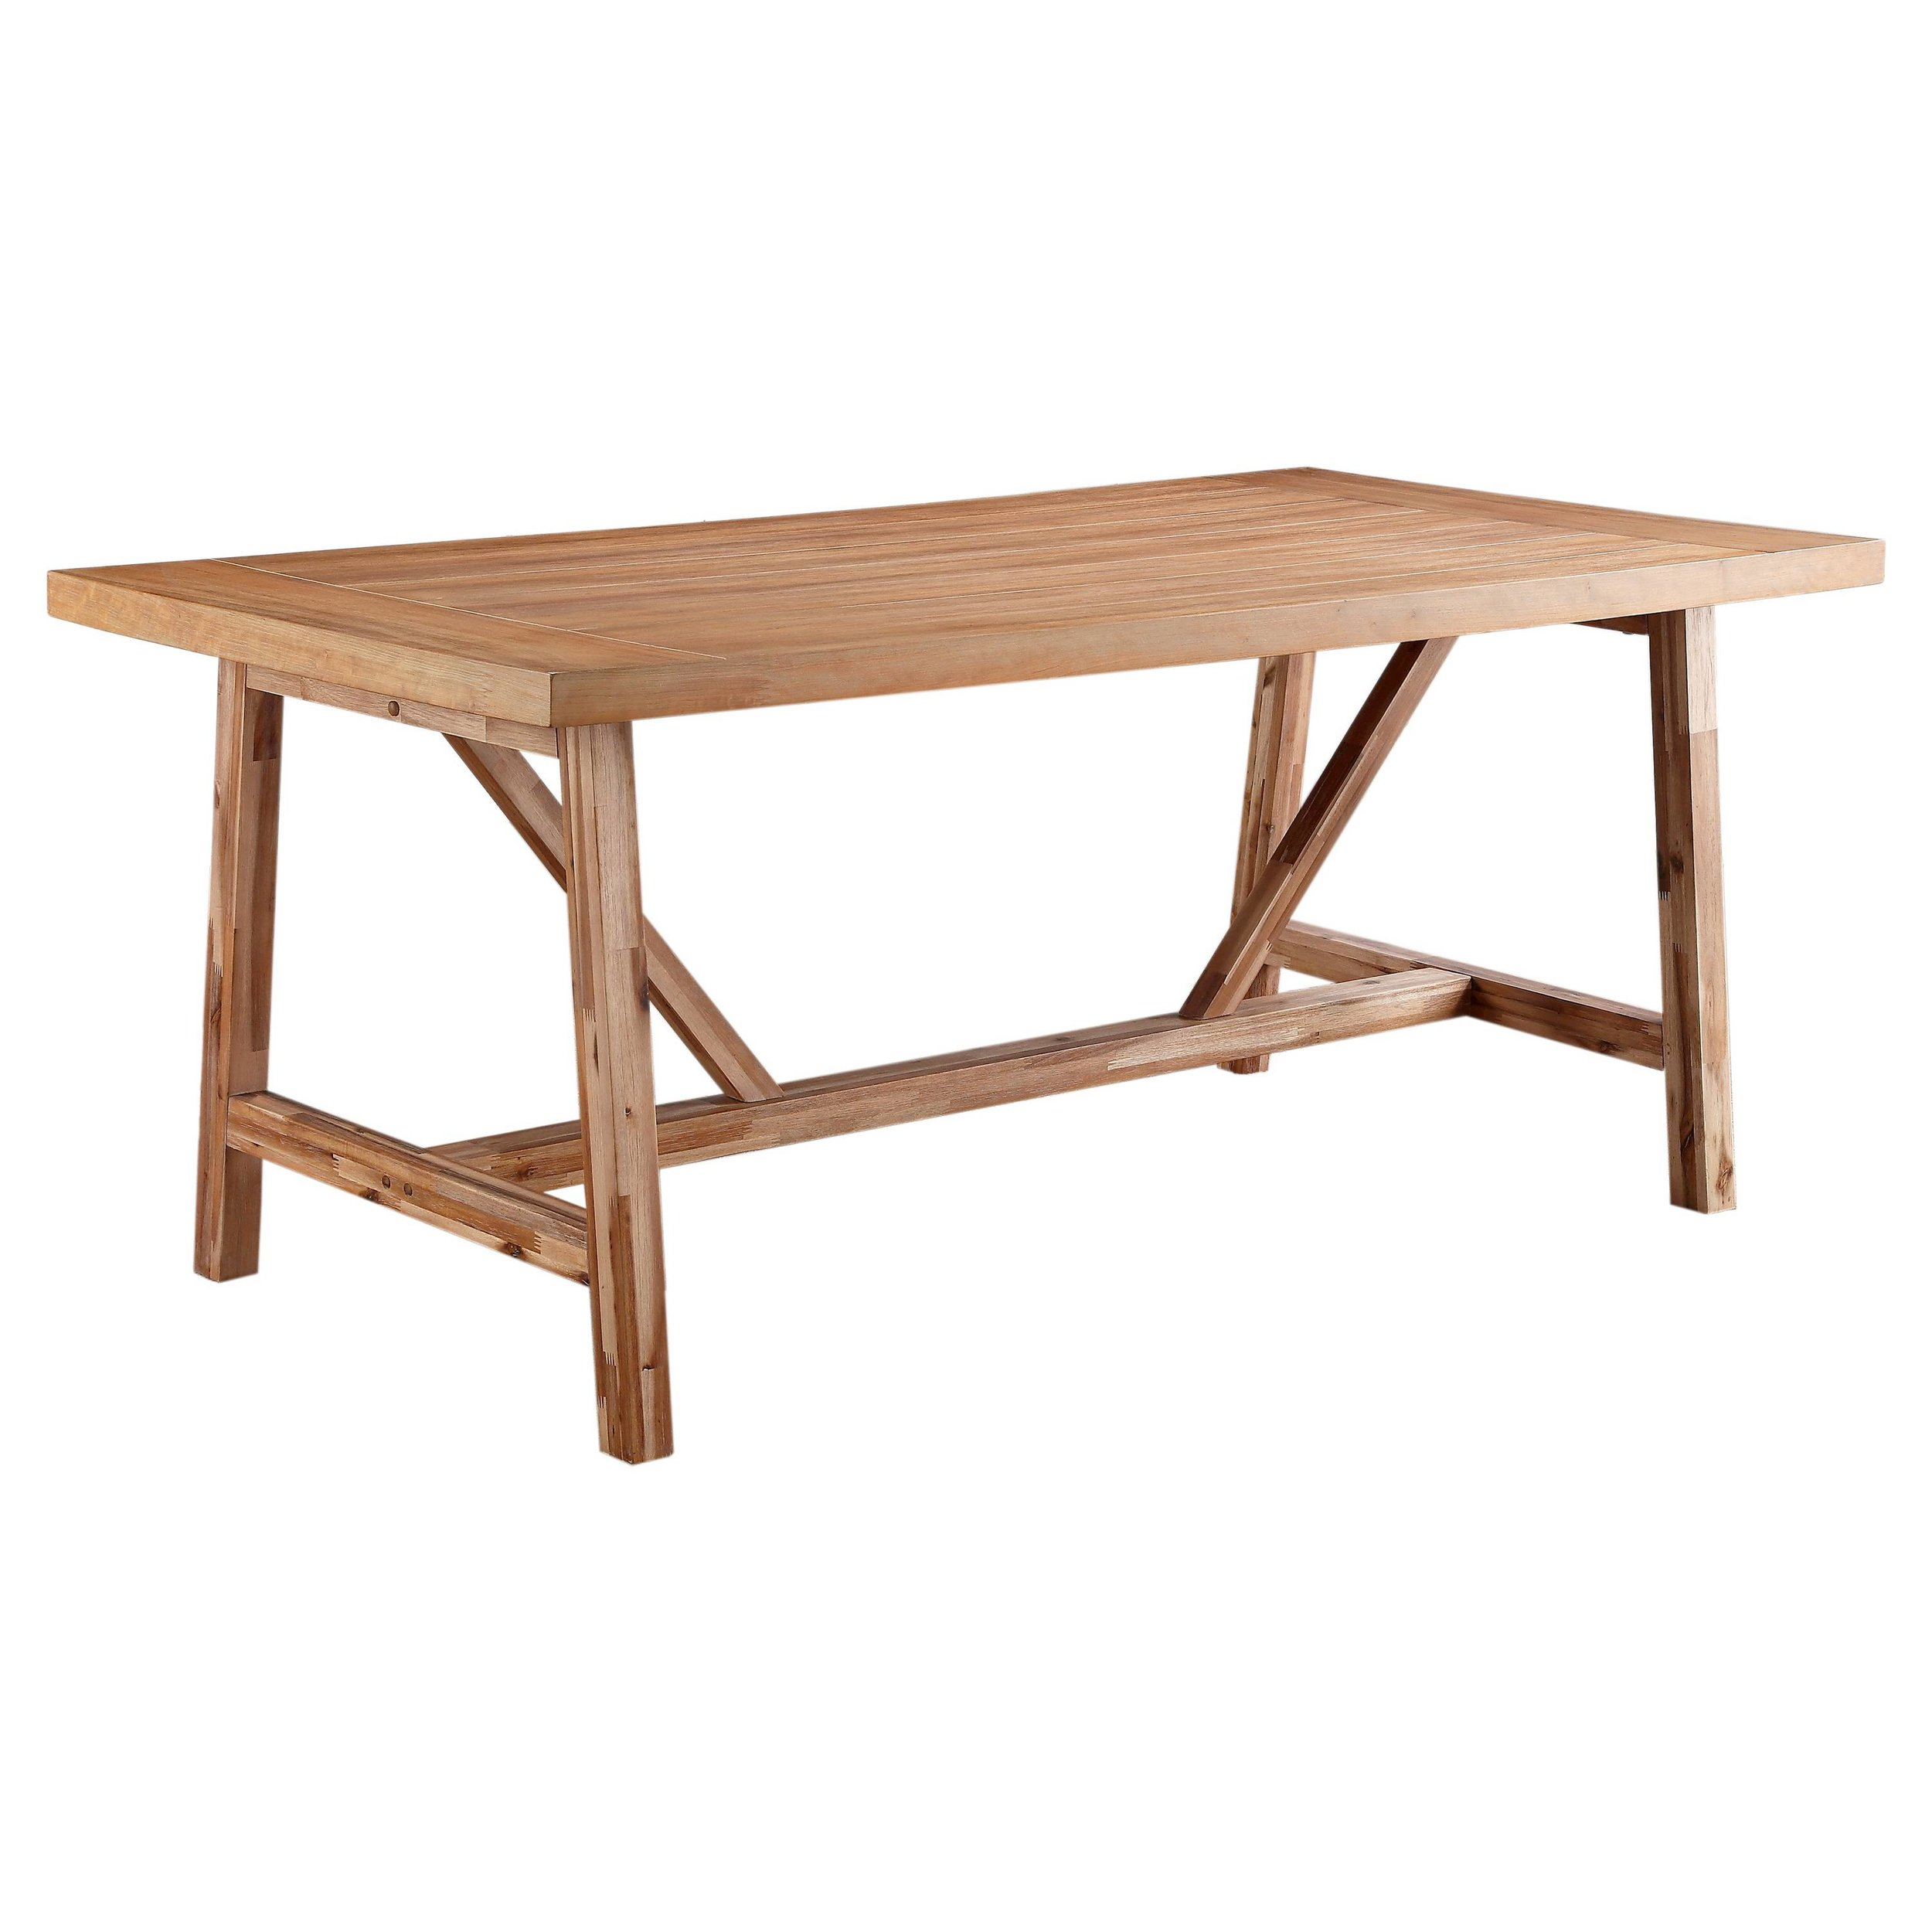 Target farmhouse dining table.jpeg